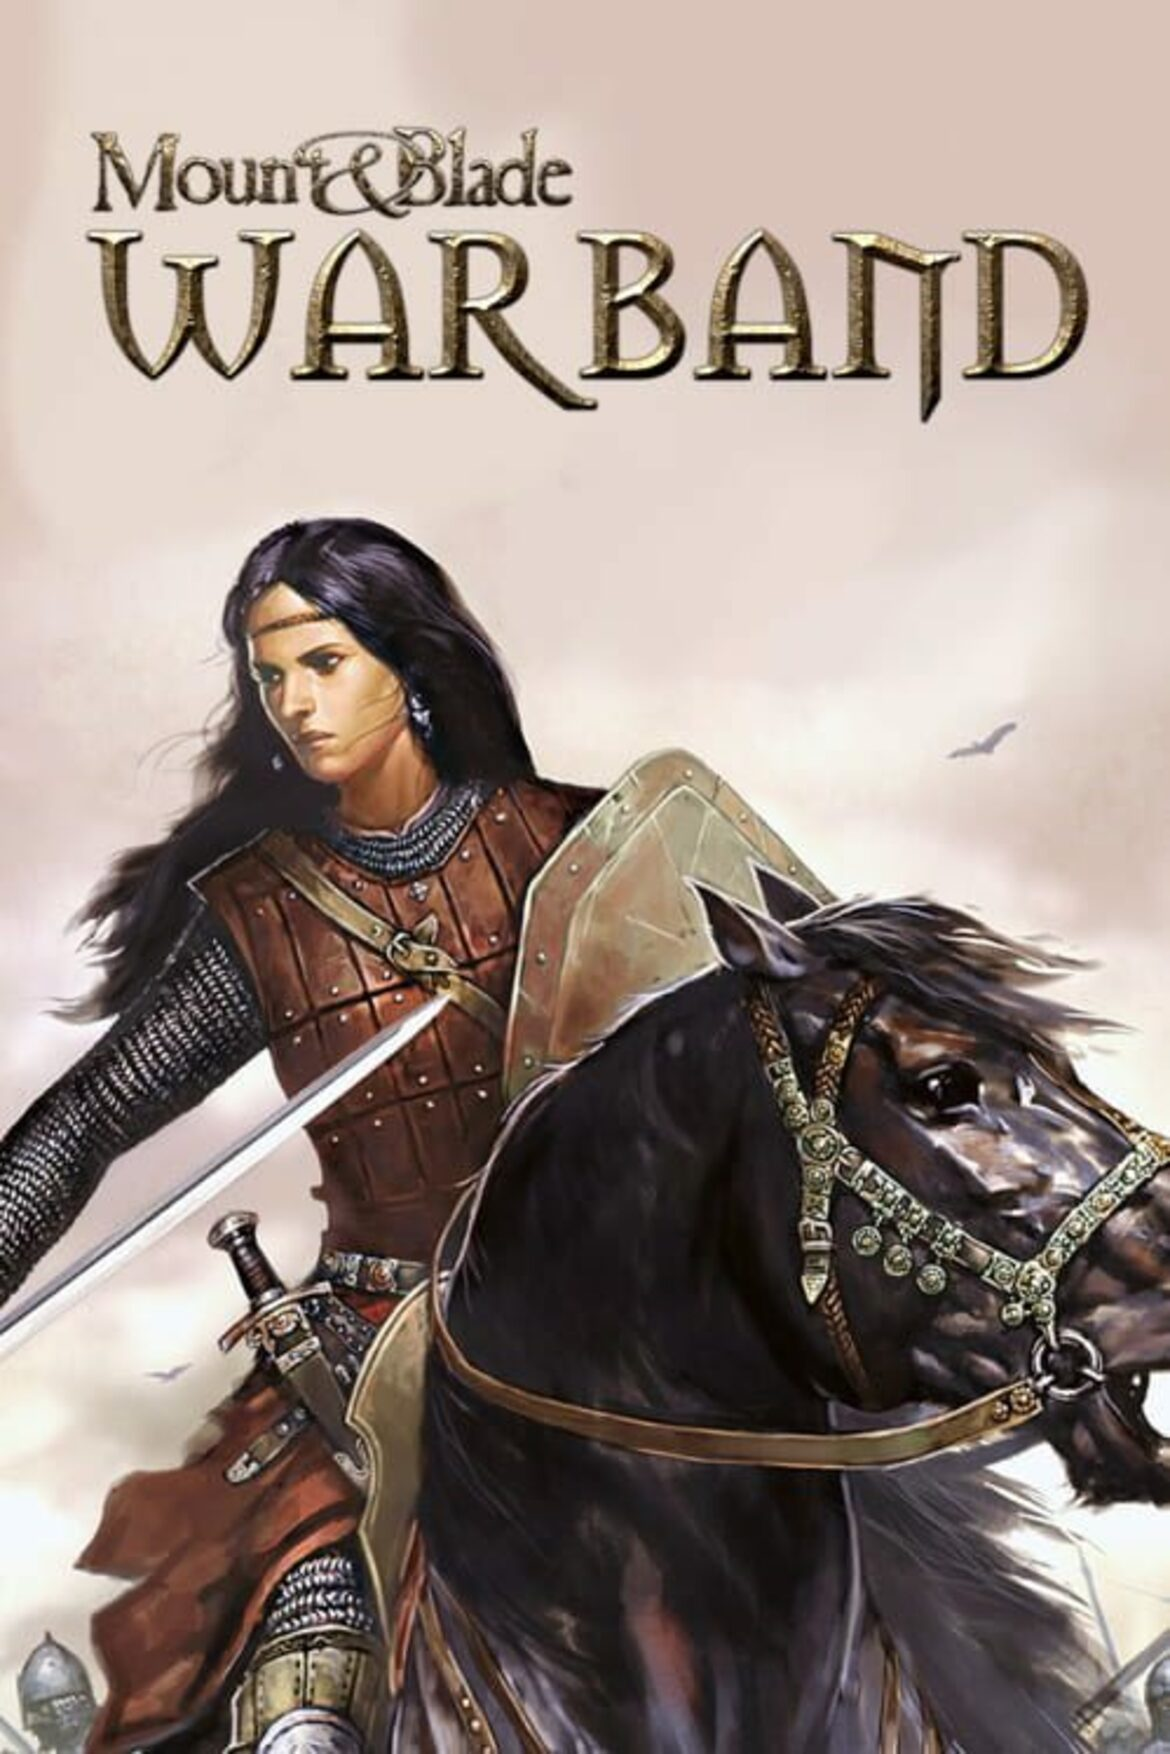 game-steam-mount-blade-warband-cover-1897468